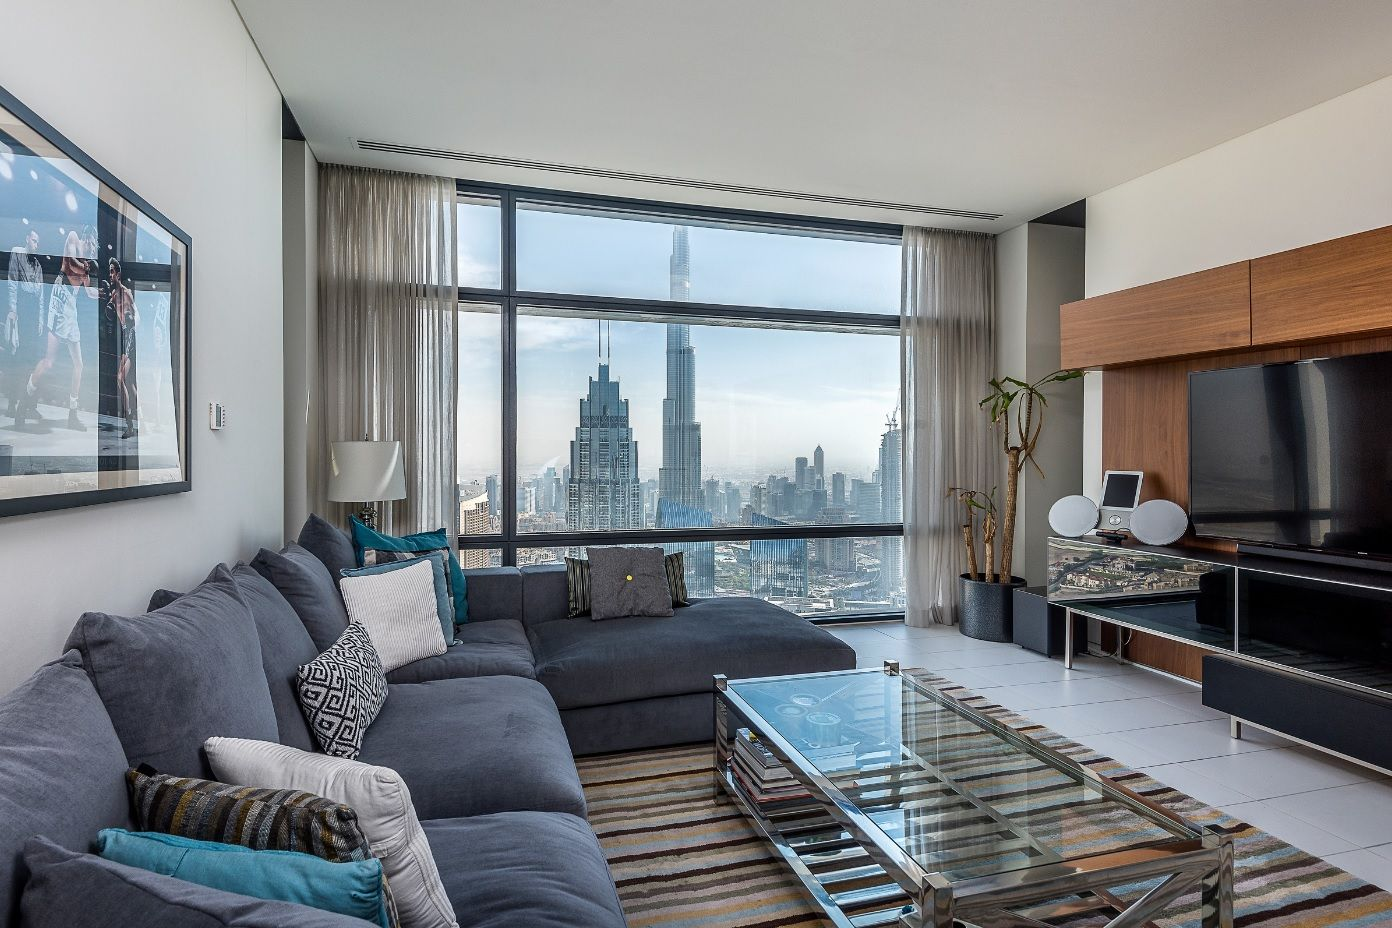 Imagine living in this luxury apartment in the index with the view